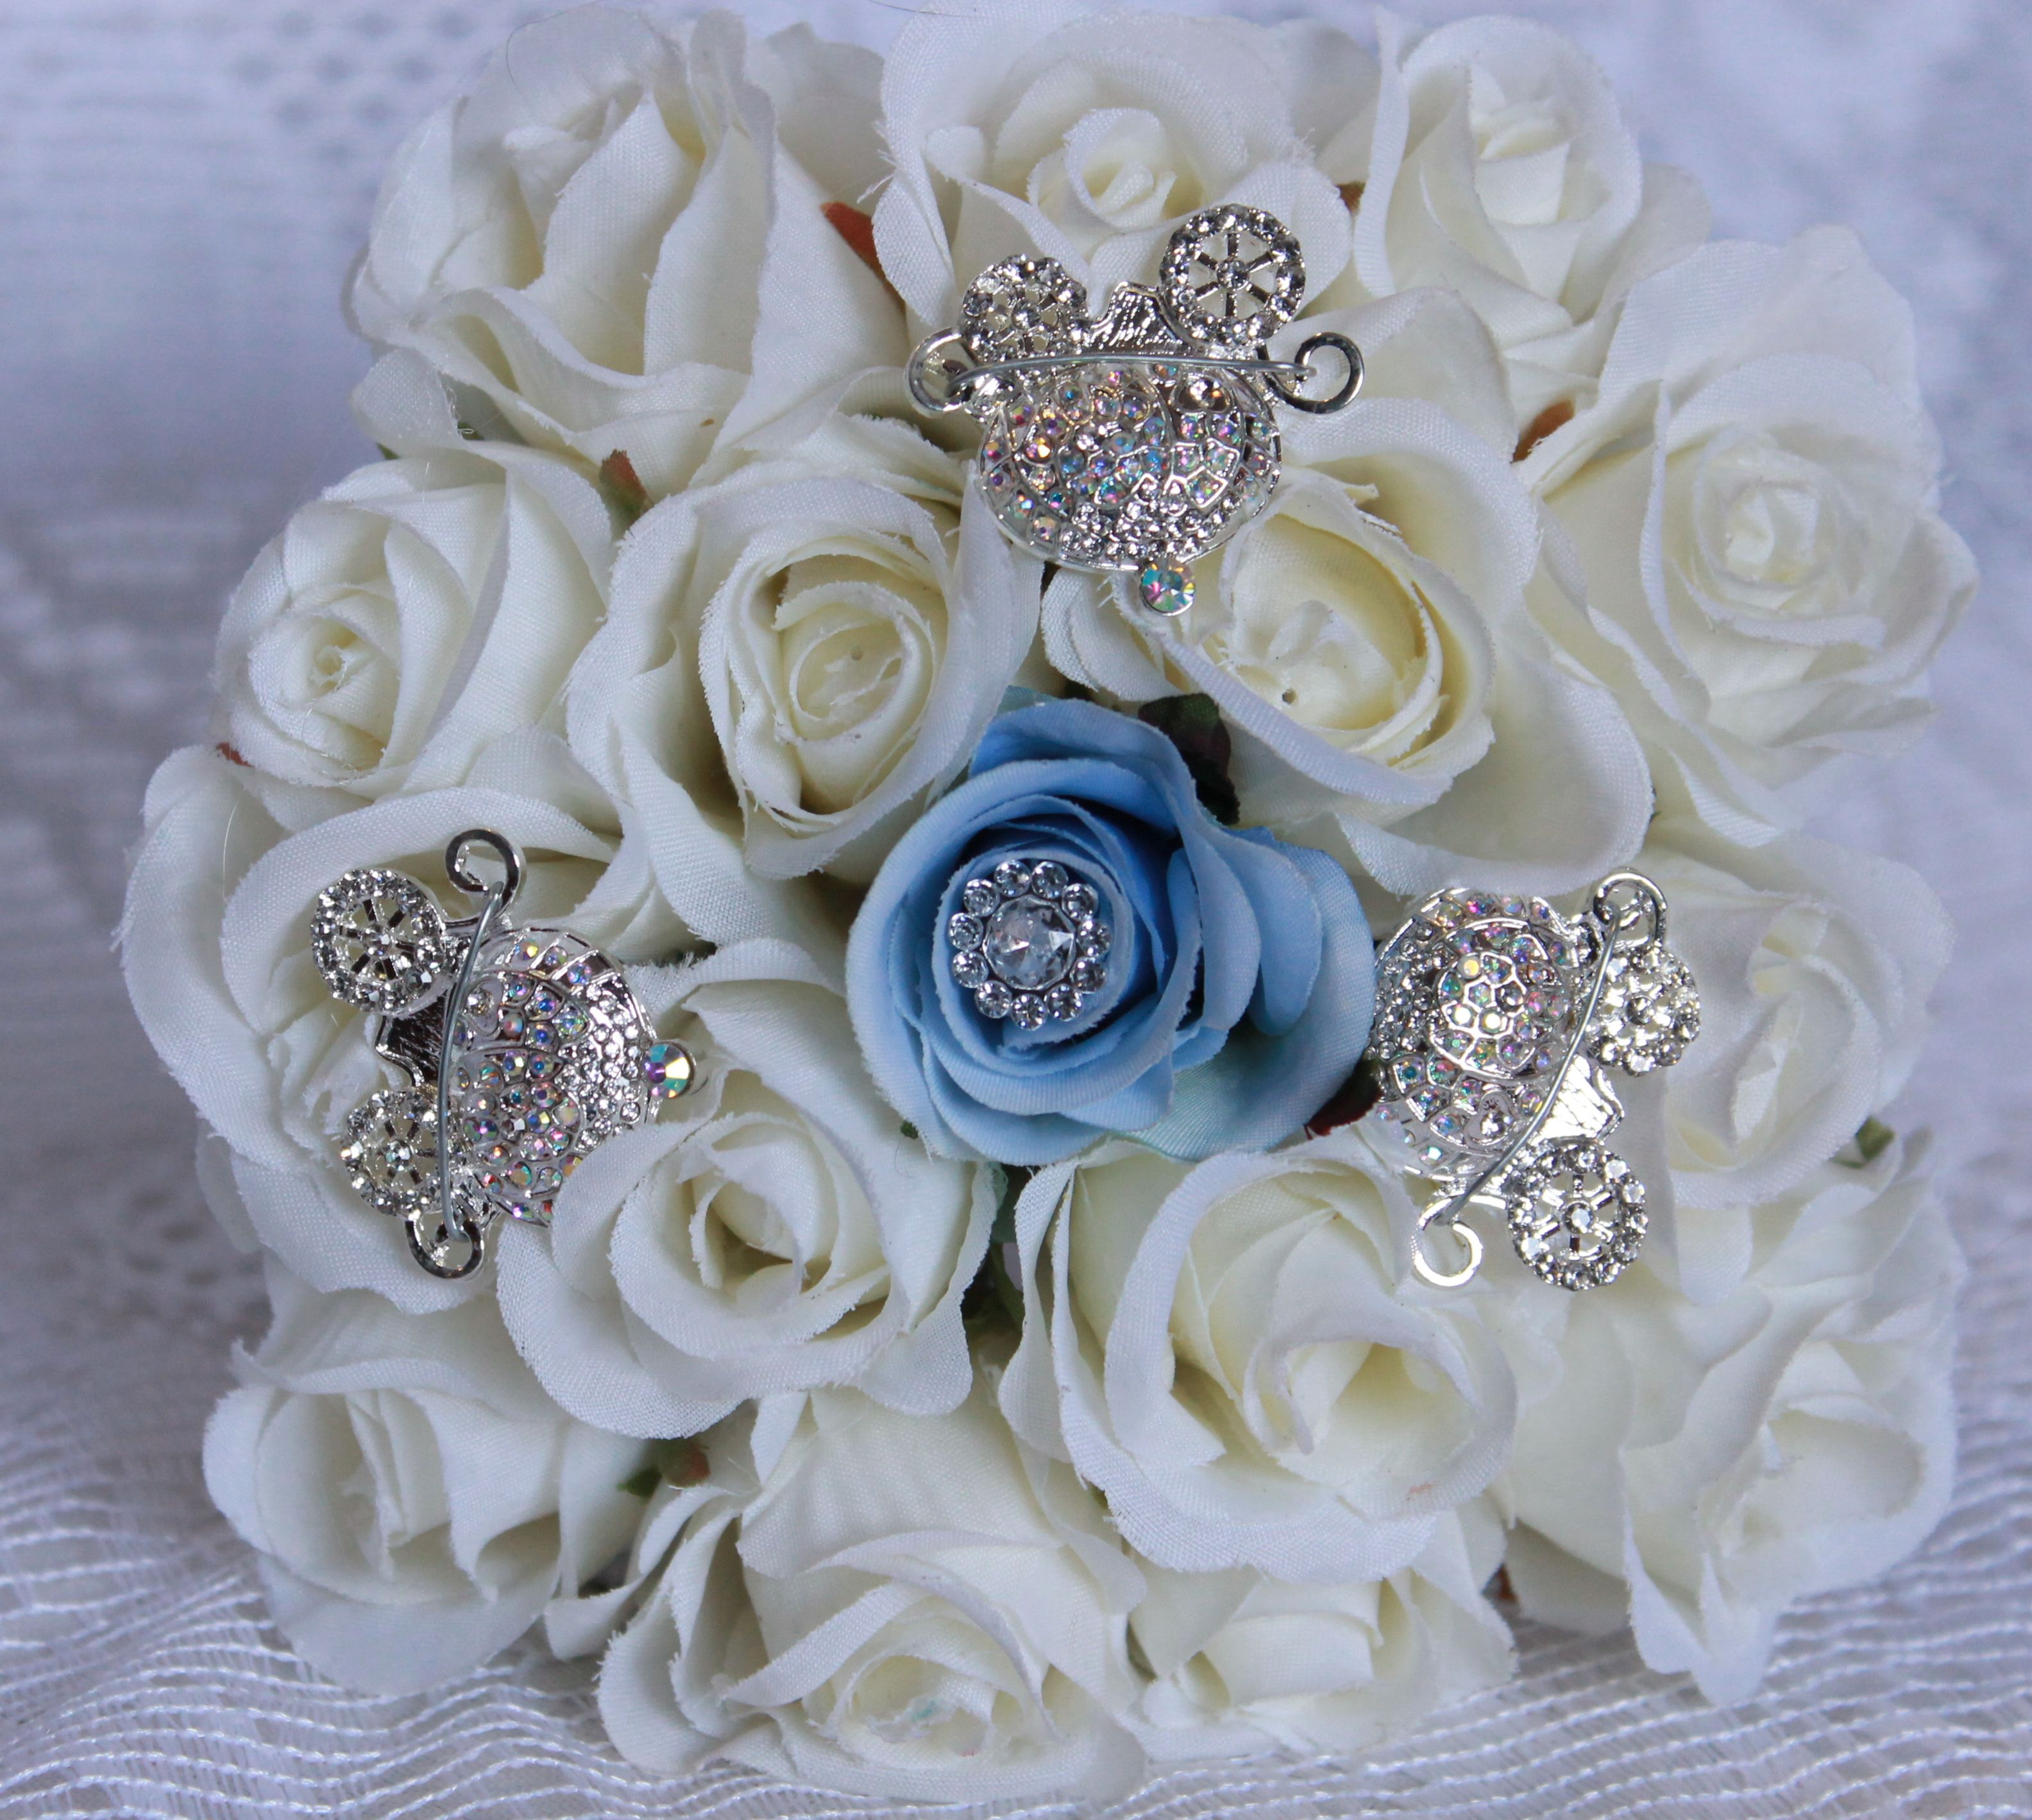 Silk Flowers And Rhinestone Brooches For This Toss Bouquet In A